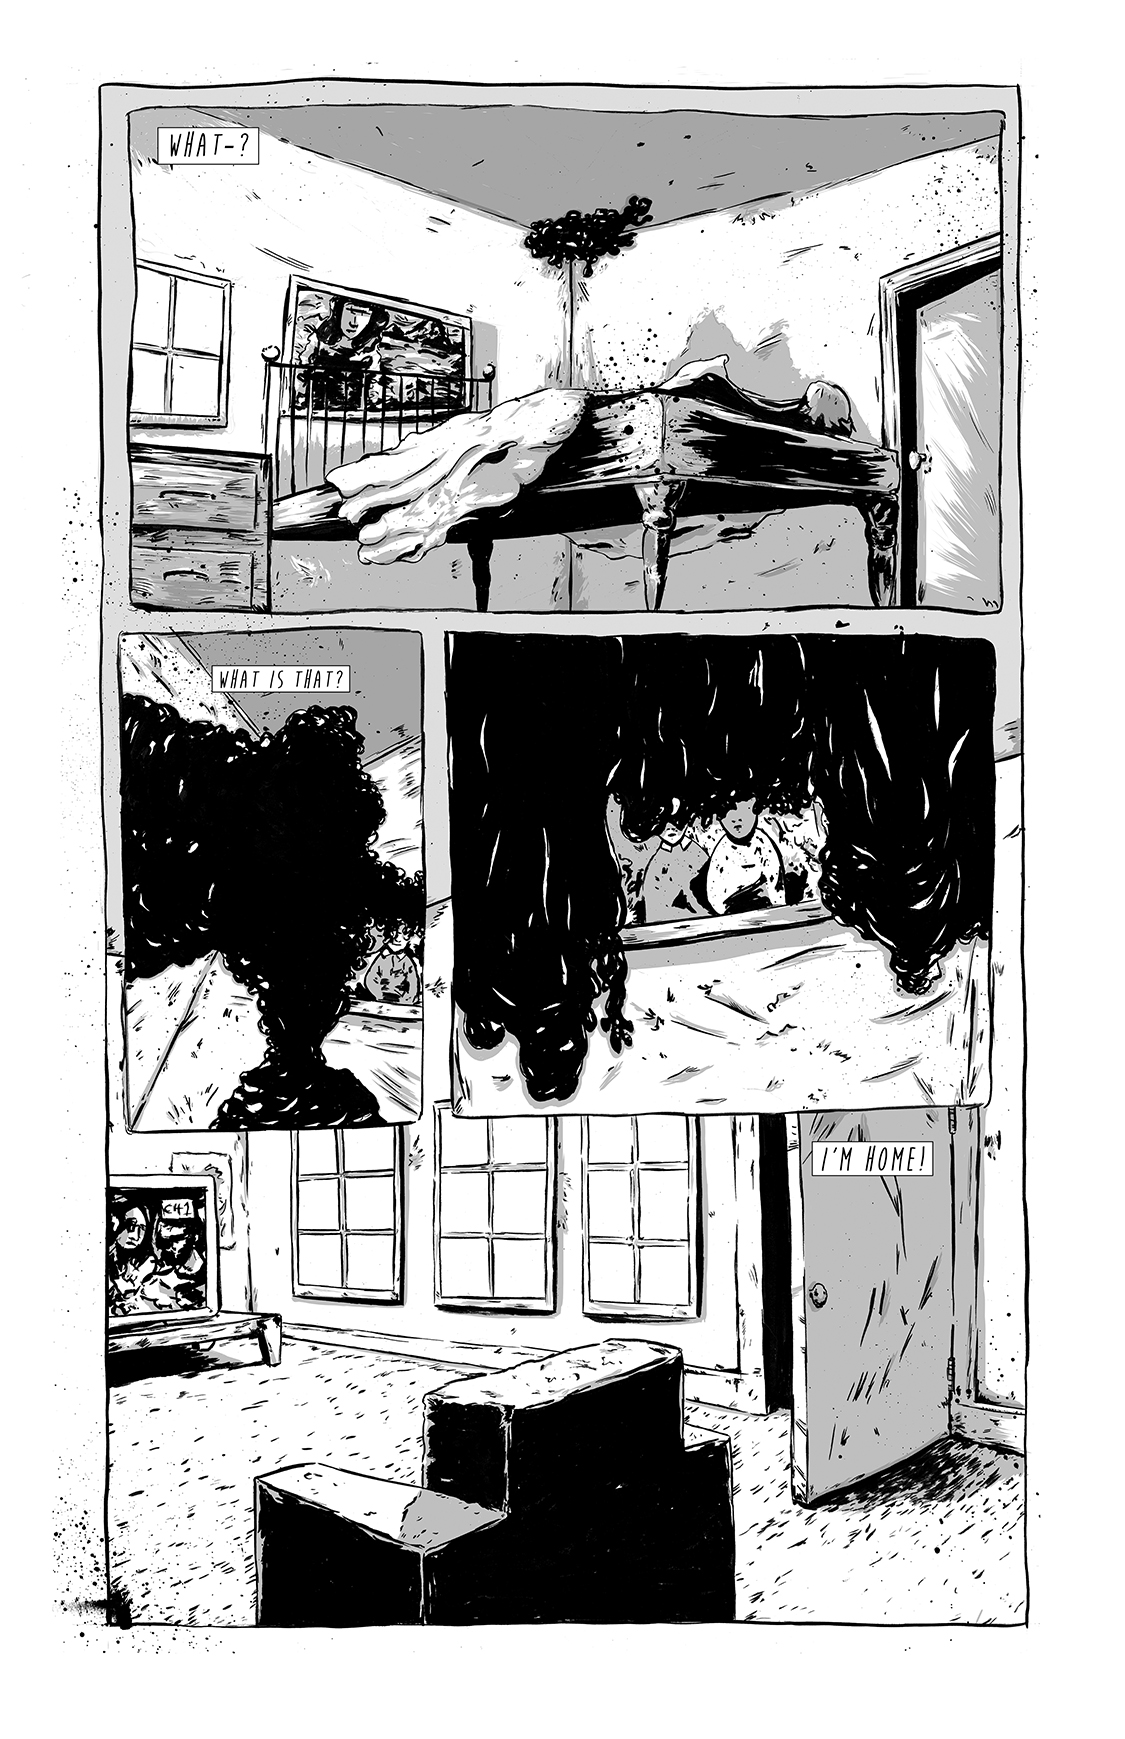 Eight Days Alone, page 5, by Sam Costello and Matthew Goik